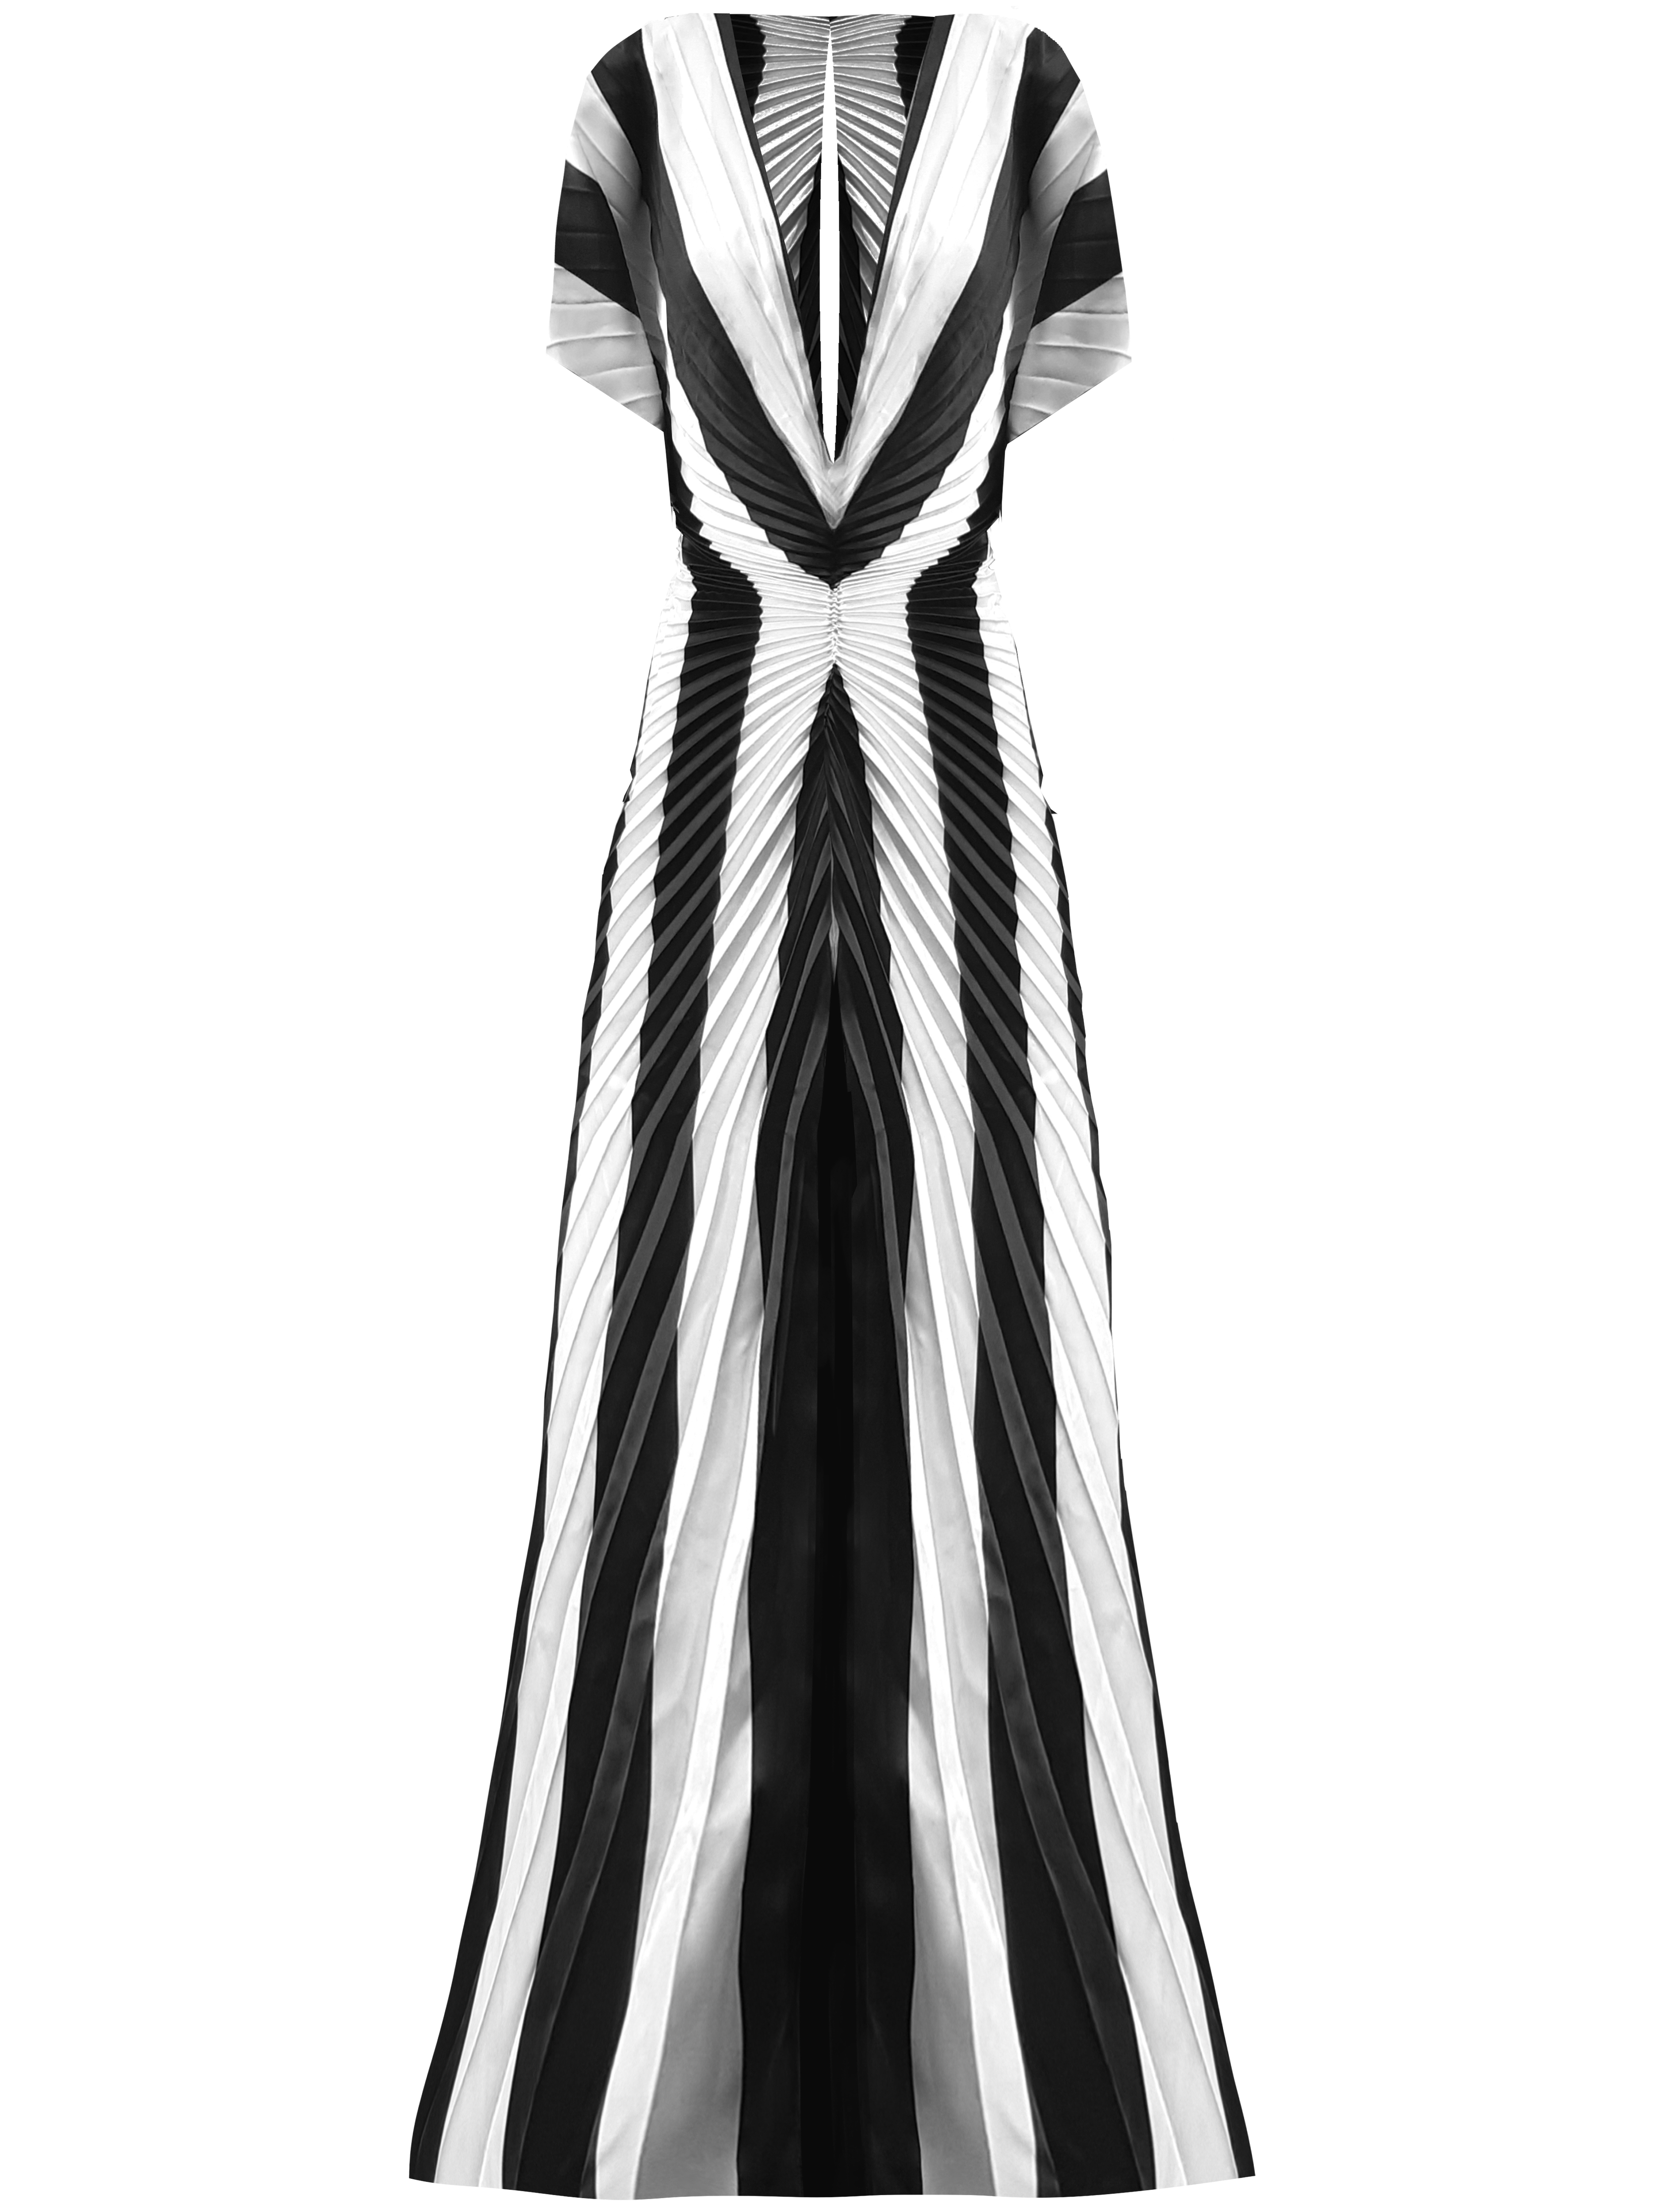 Illusion Kaftan - Black/White by Georgia Hardinge on curated-crowd.com